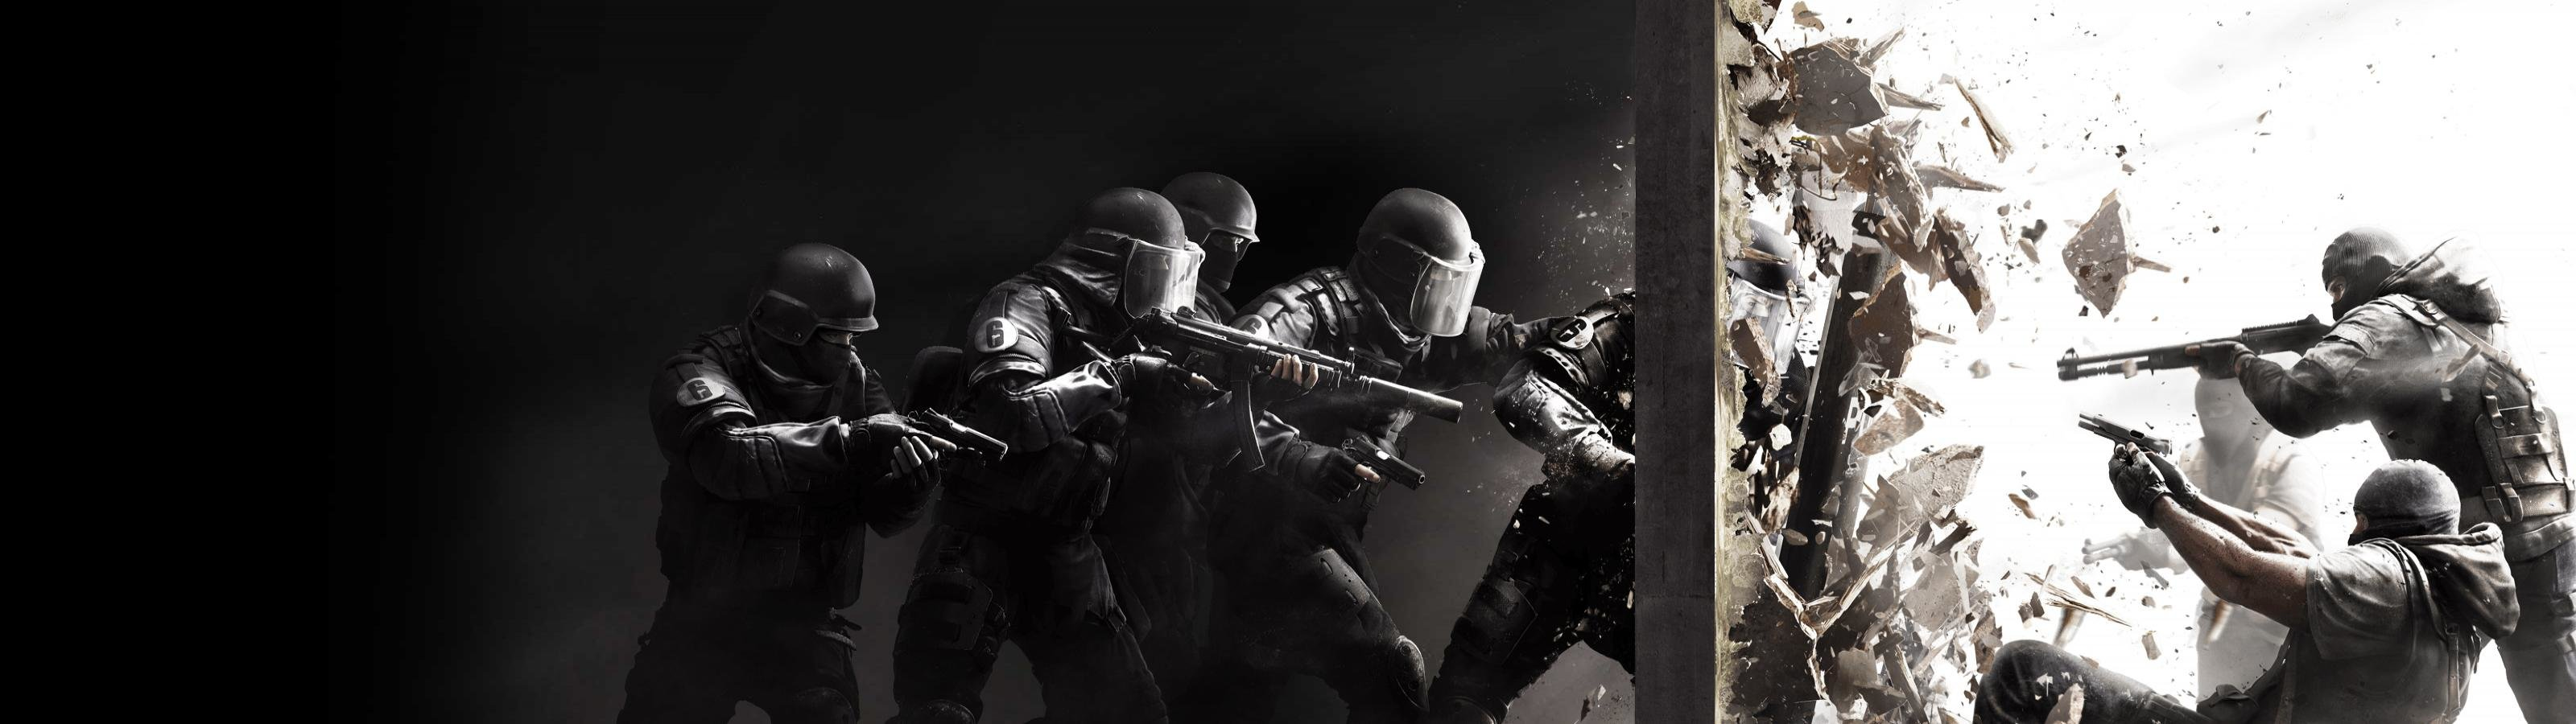 Download dual monitor 3200x900 Tom Clancy's Rainbow Six: Siege computer wallpaper ID:281747 for free